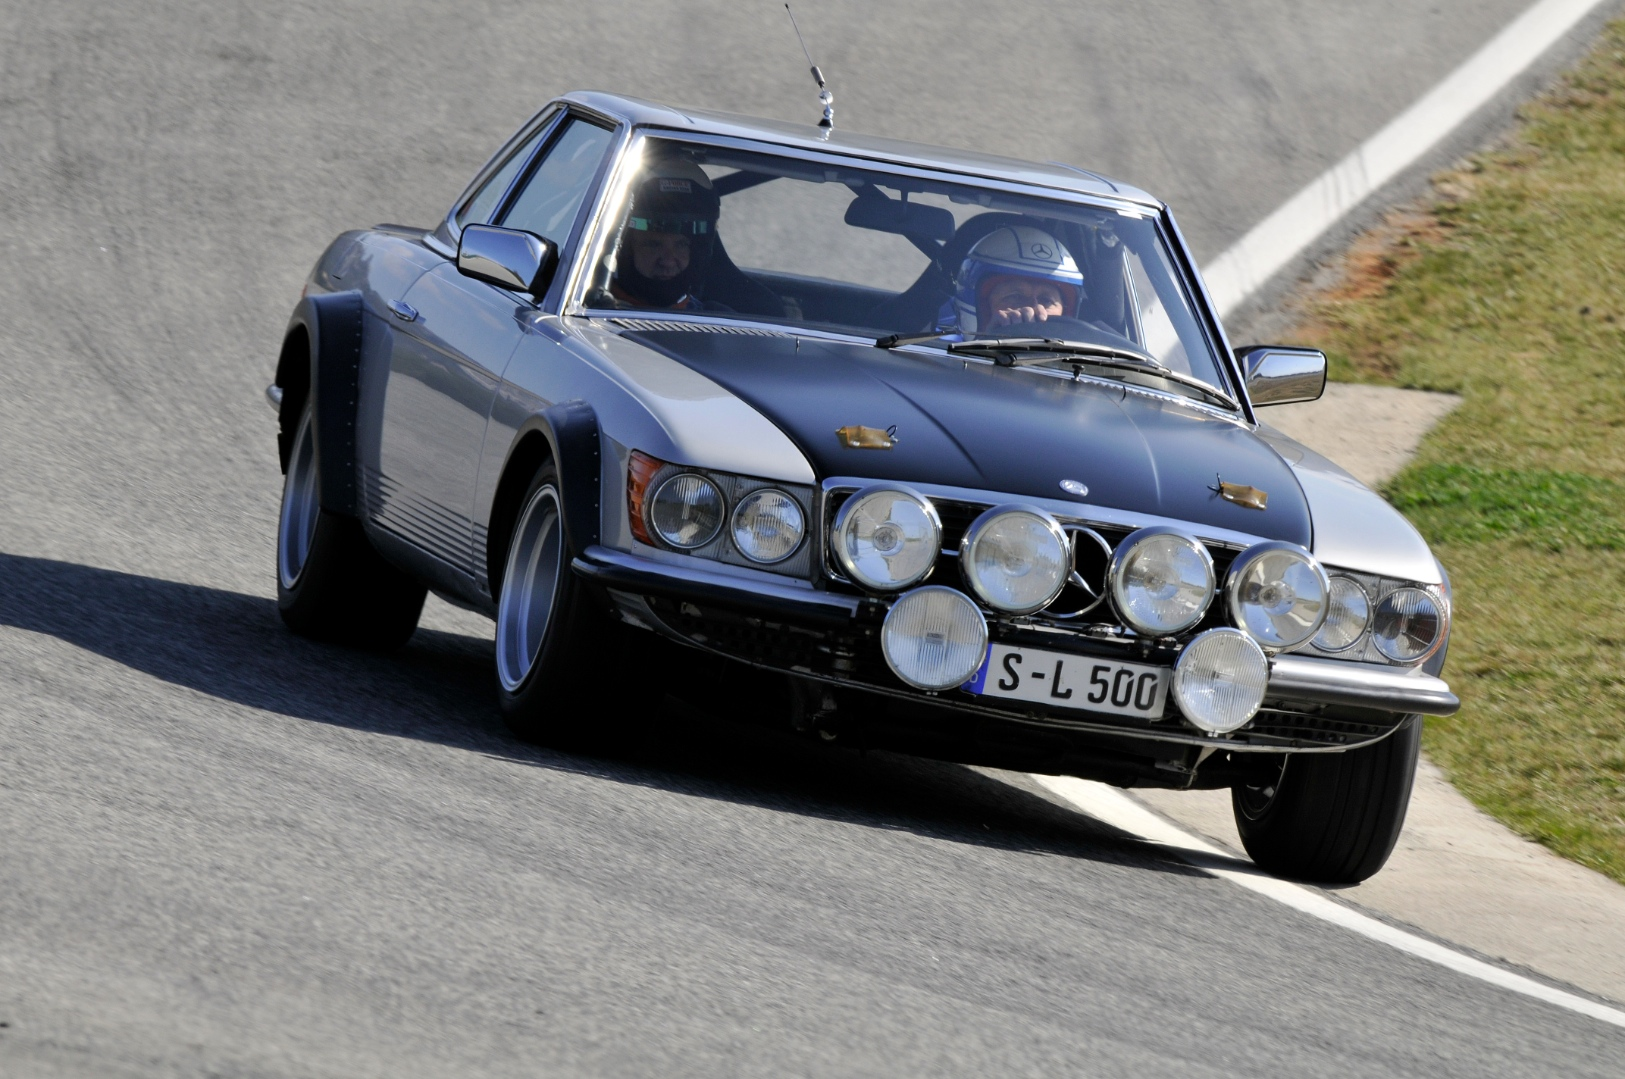 Mercedes featured a classic 500 sl at the 2013 adac eifel for Rally mercedes benz